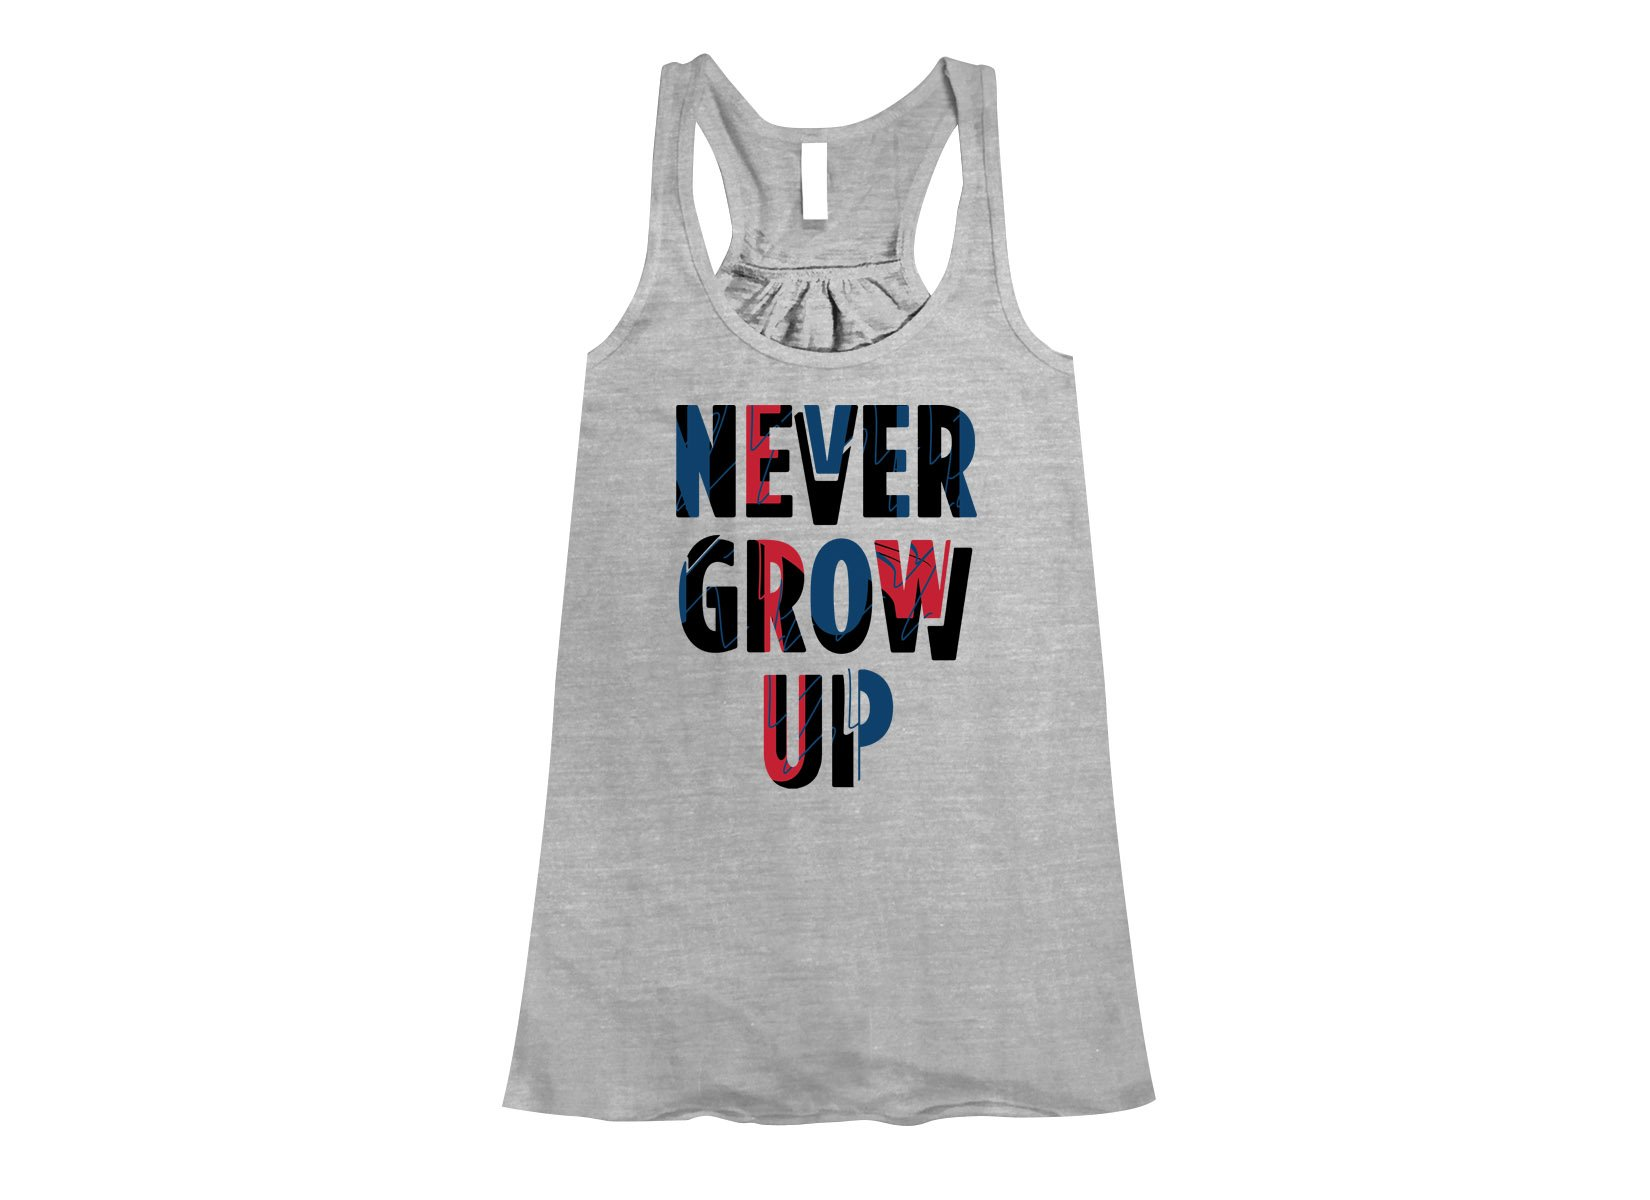 Never Grow Up on Womens Tanks T-Shirt